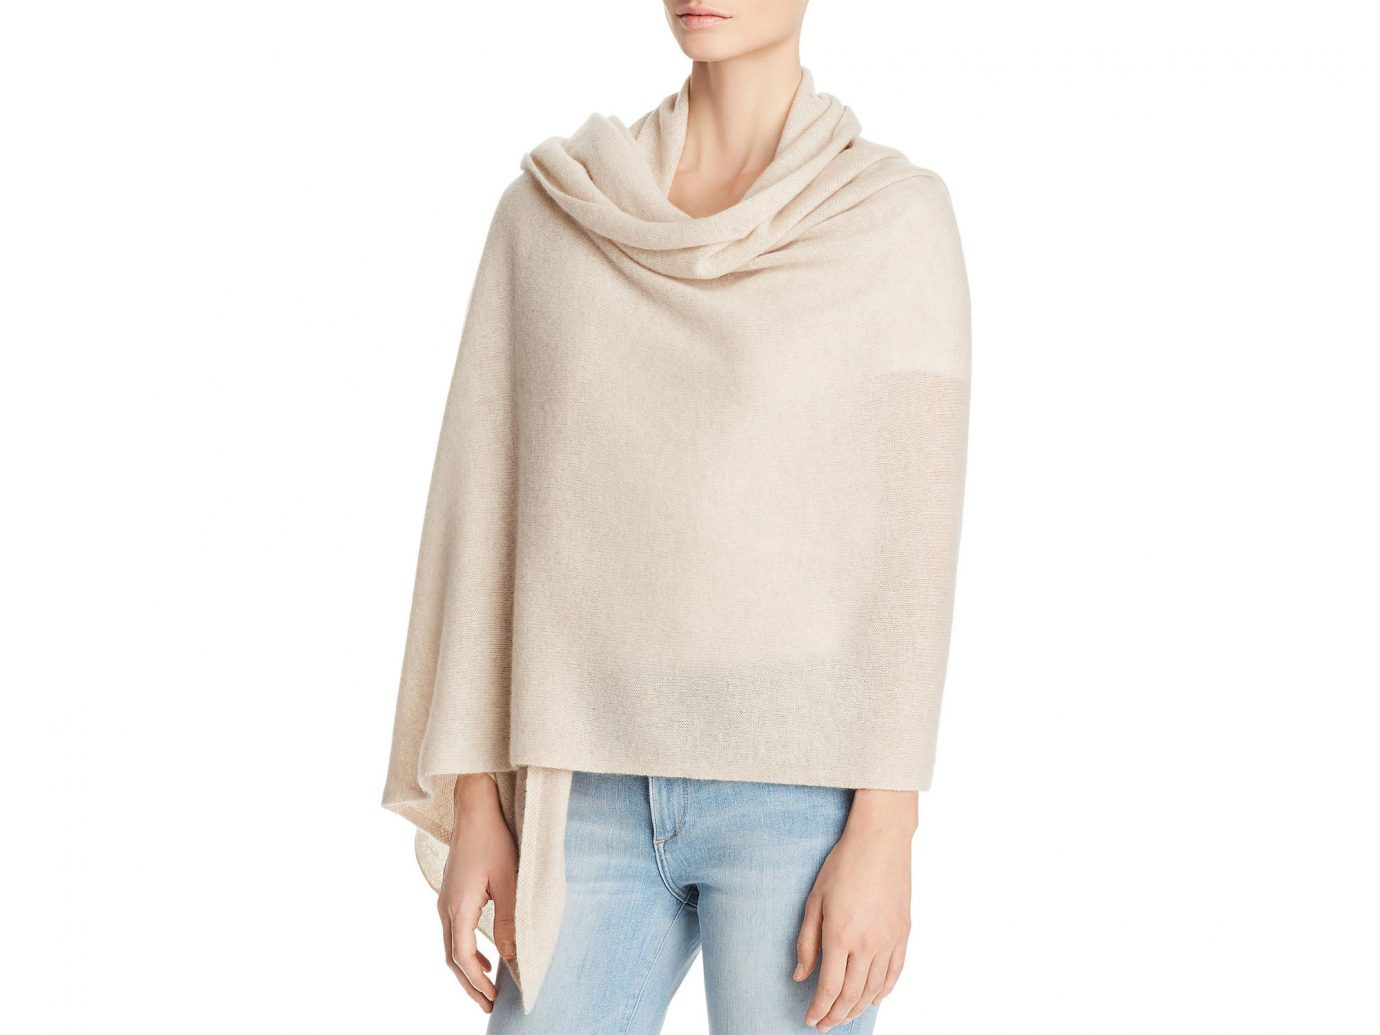 Packing Tips Style + Design Travel Shop person clothing shoulder neck standing poncho posing beige sleeve woolen